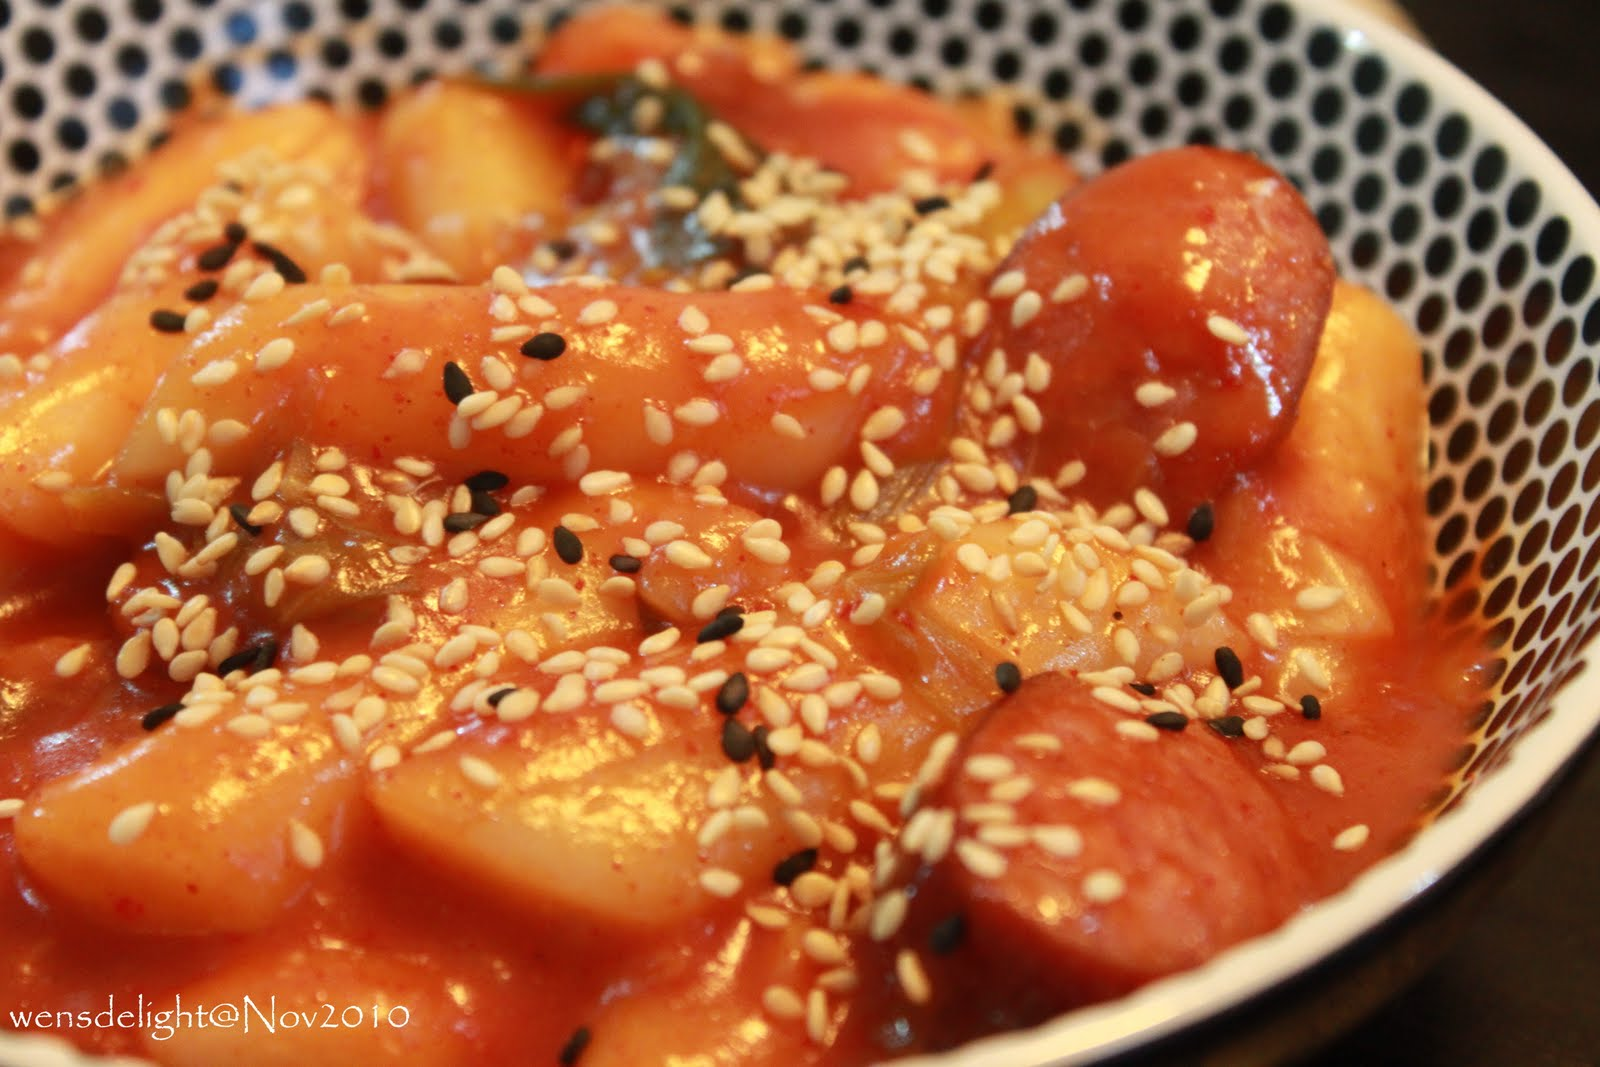 Korean Rice Cake Recipe Gochujang: Wen's Delight: Spicy Korean Rice Cakes